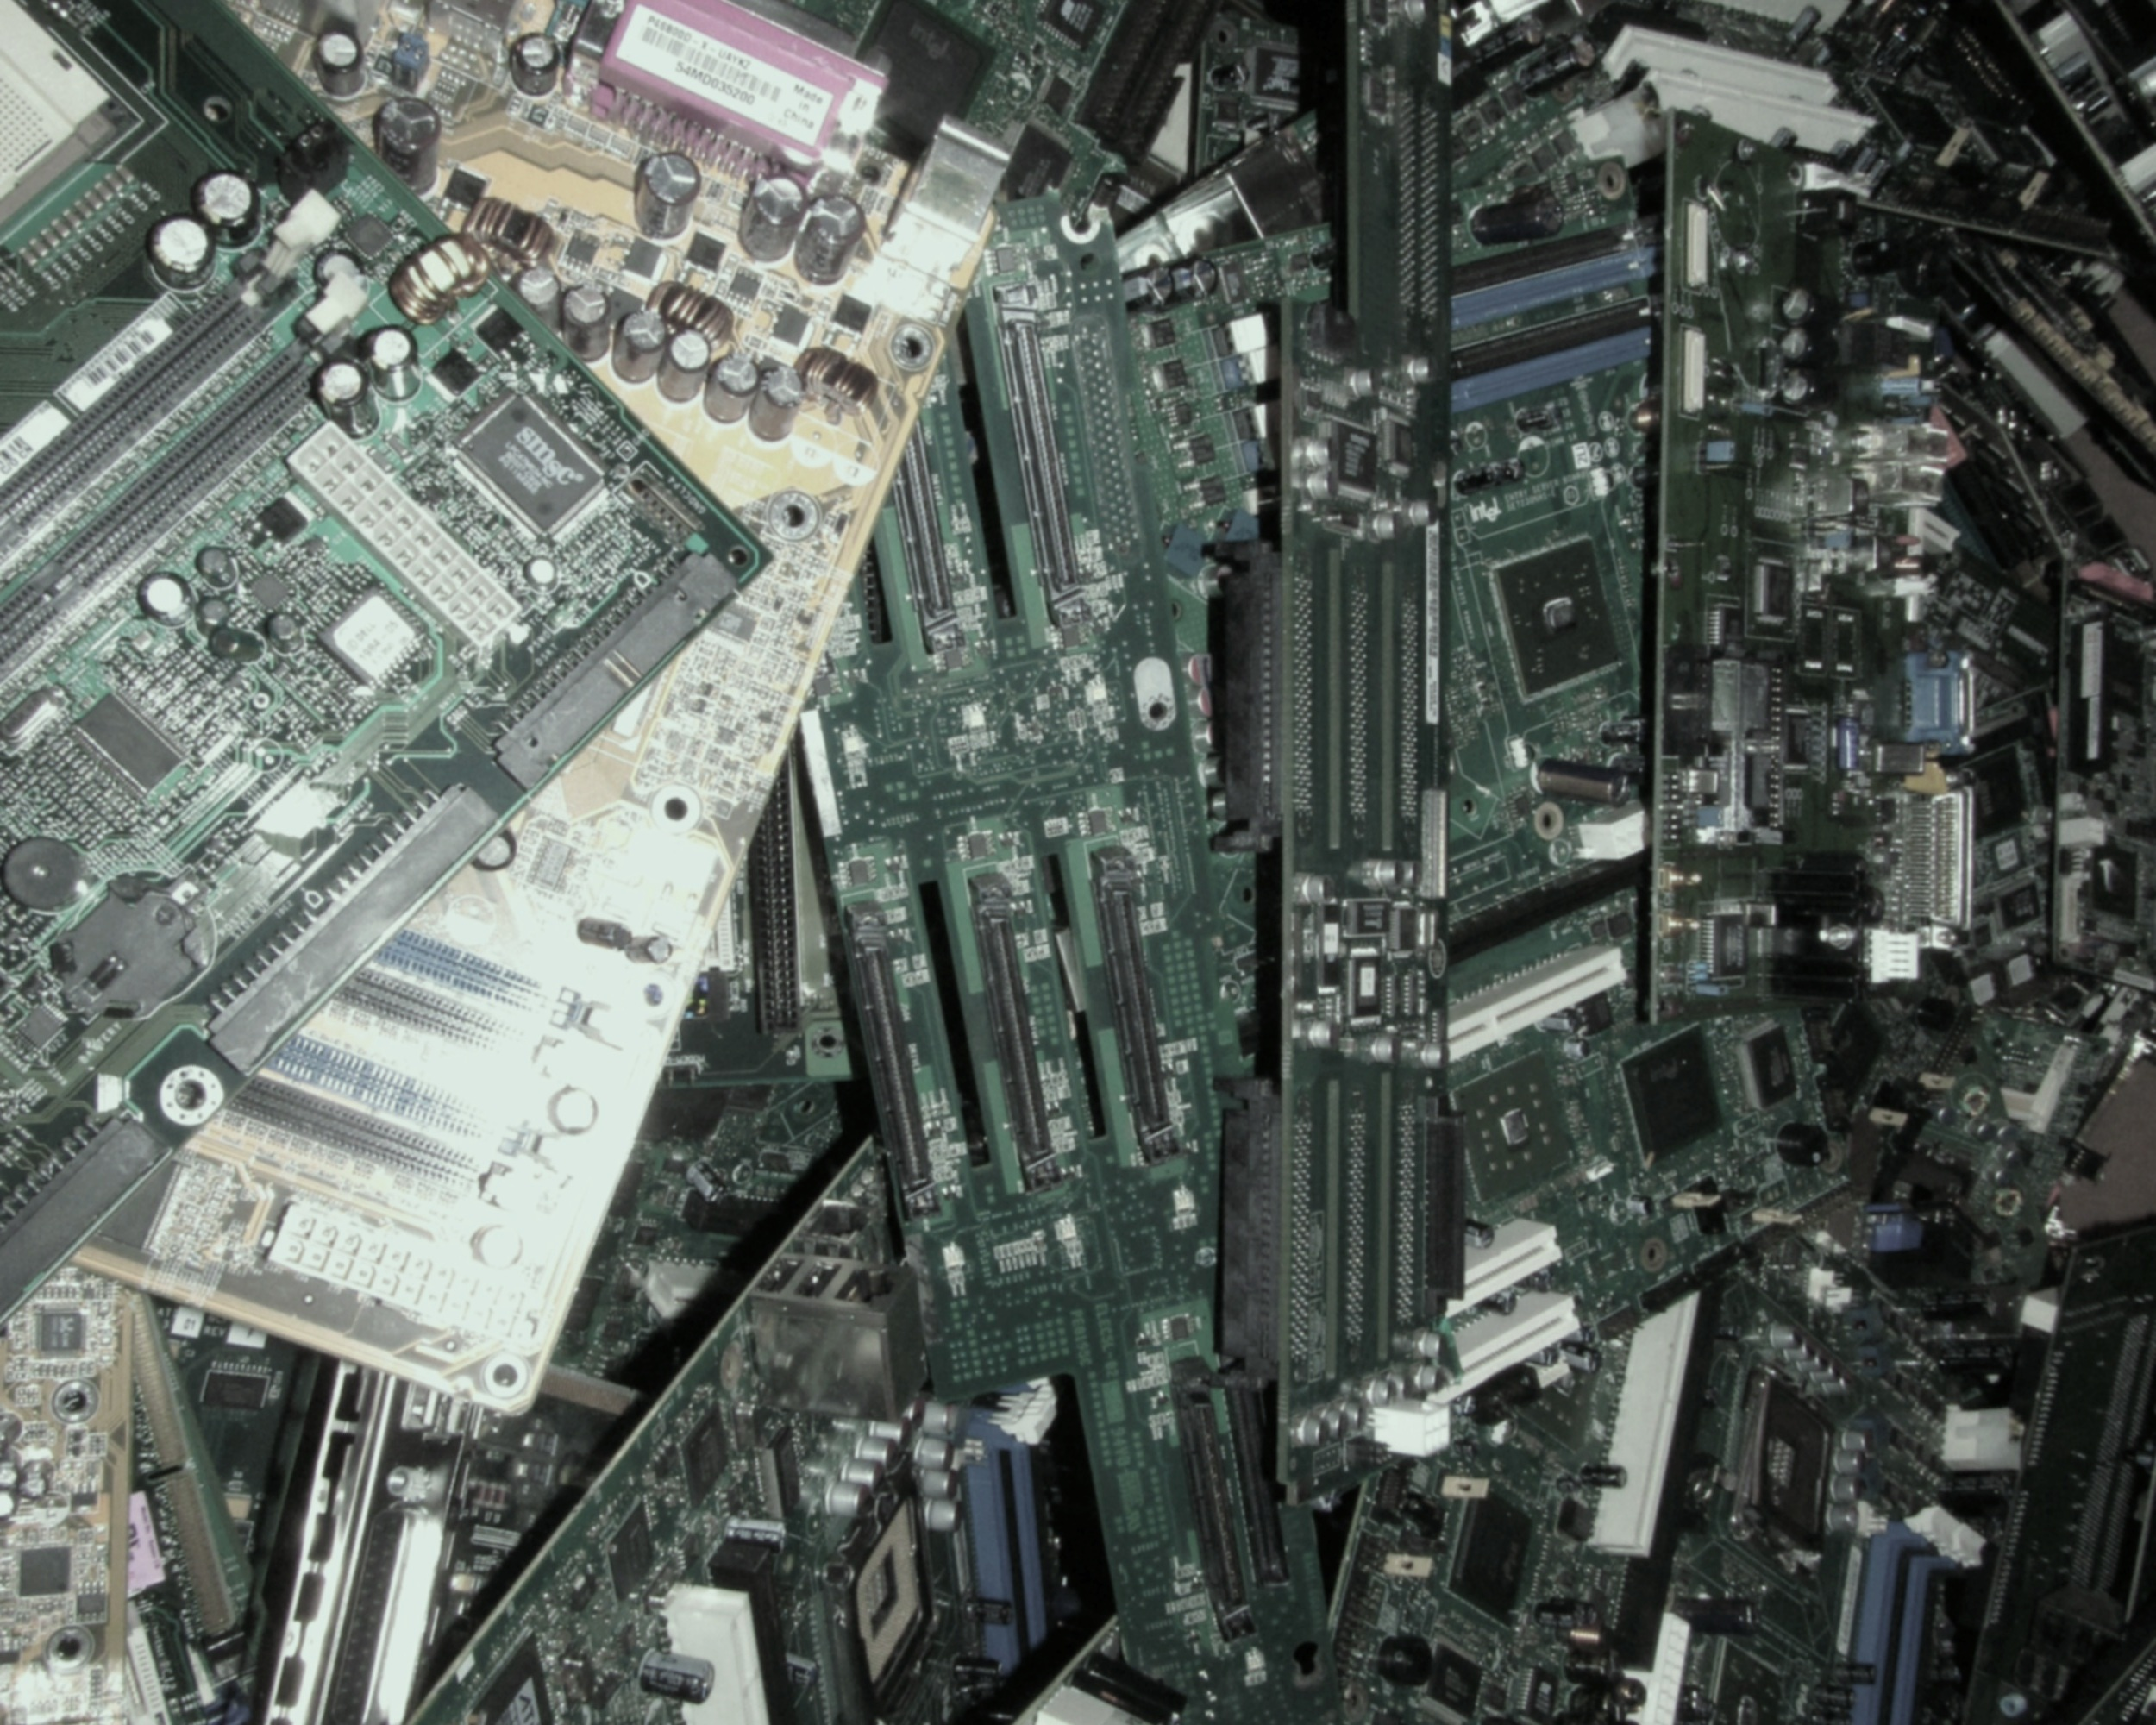 A Collection of used Circuit Boards.